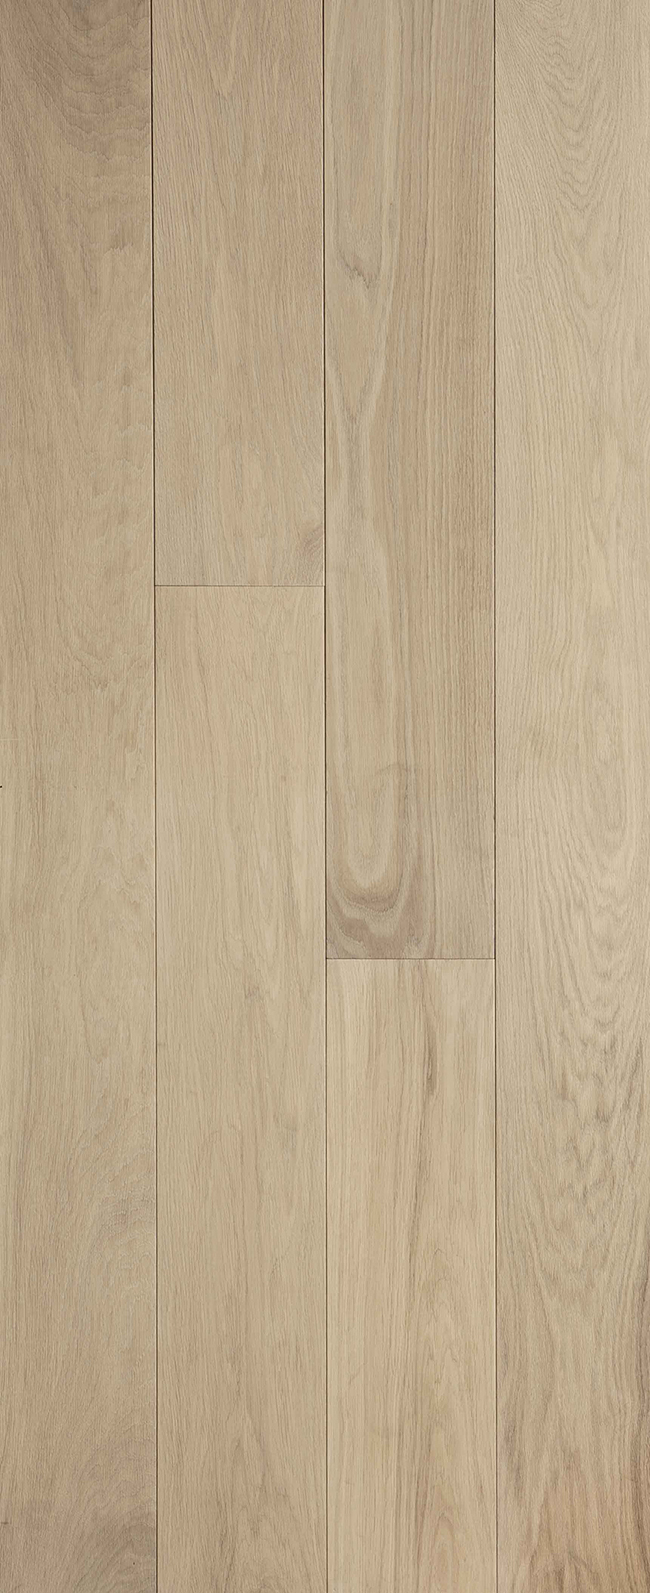 LATTE Engineered Prime Oak.jpg